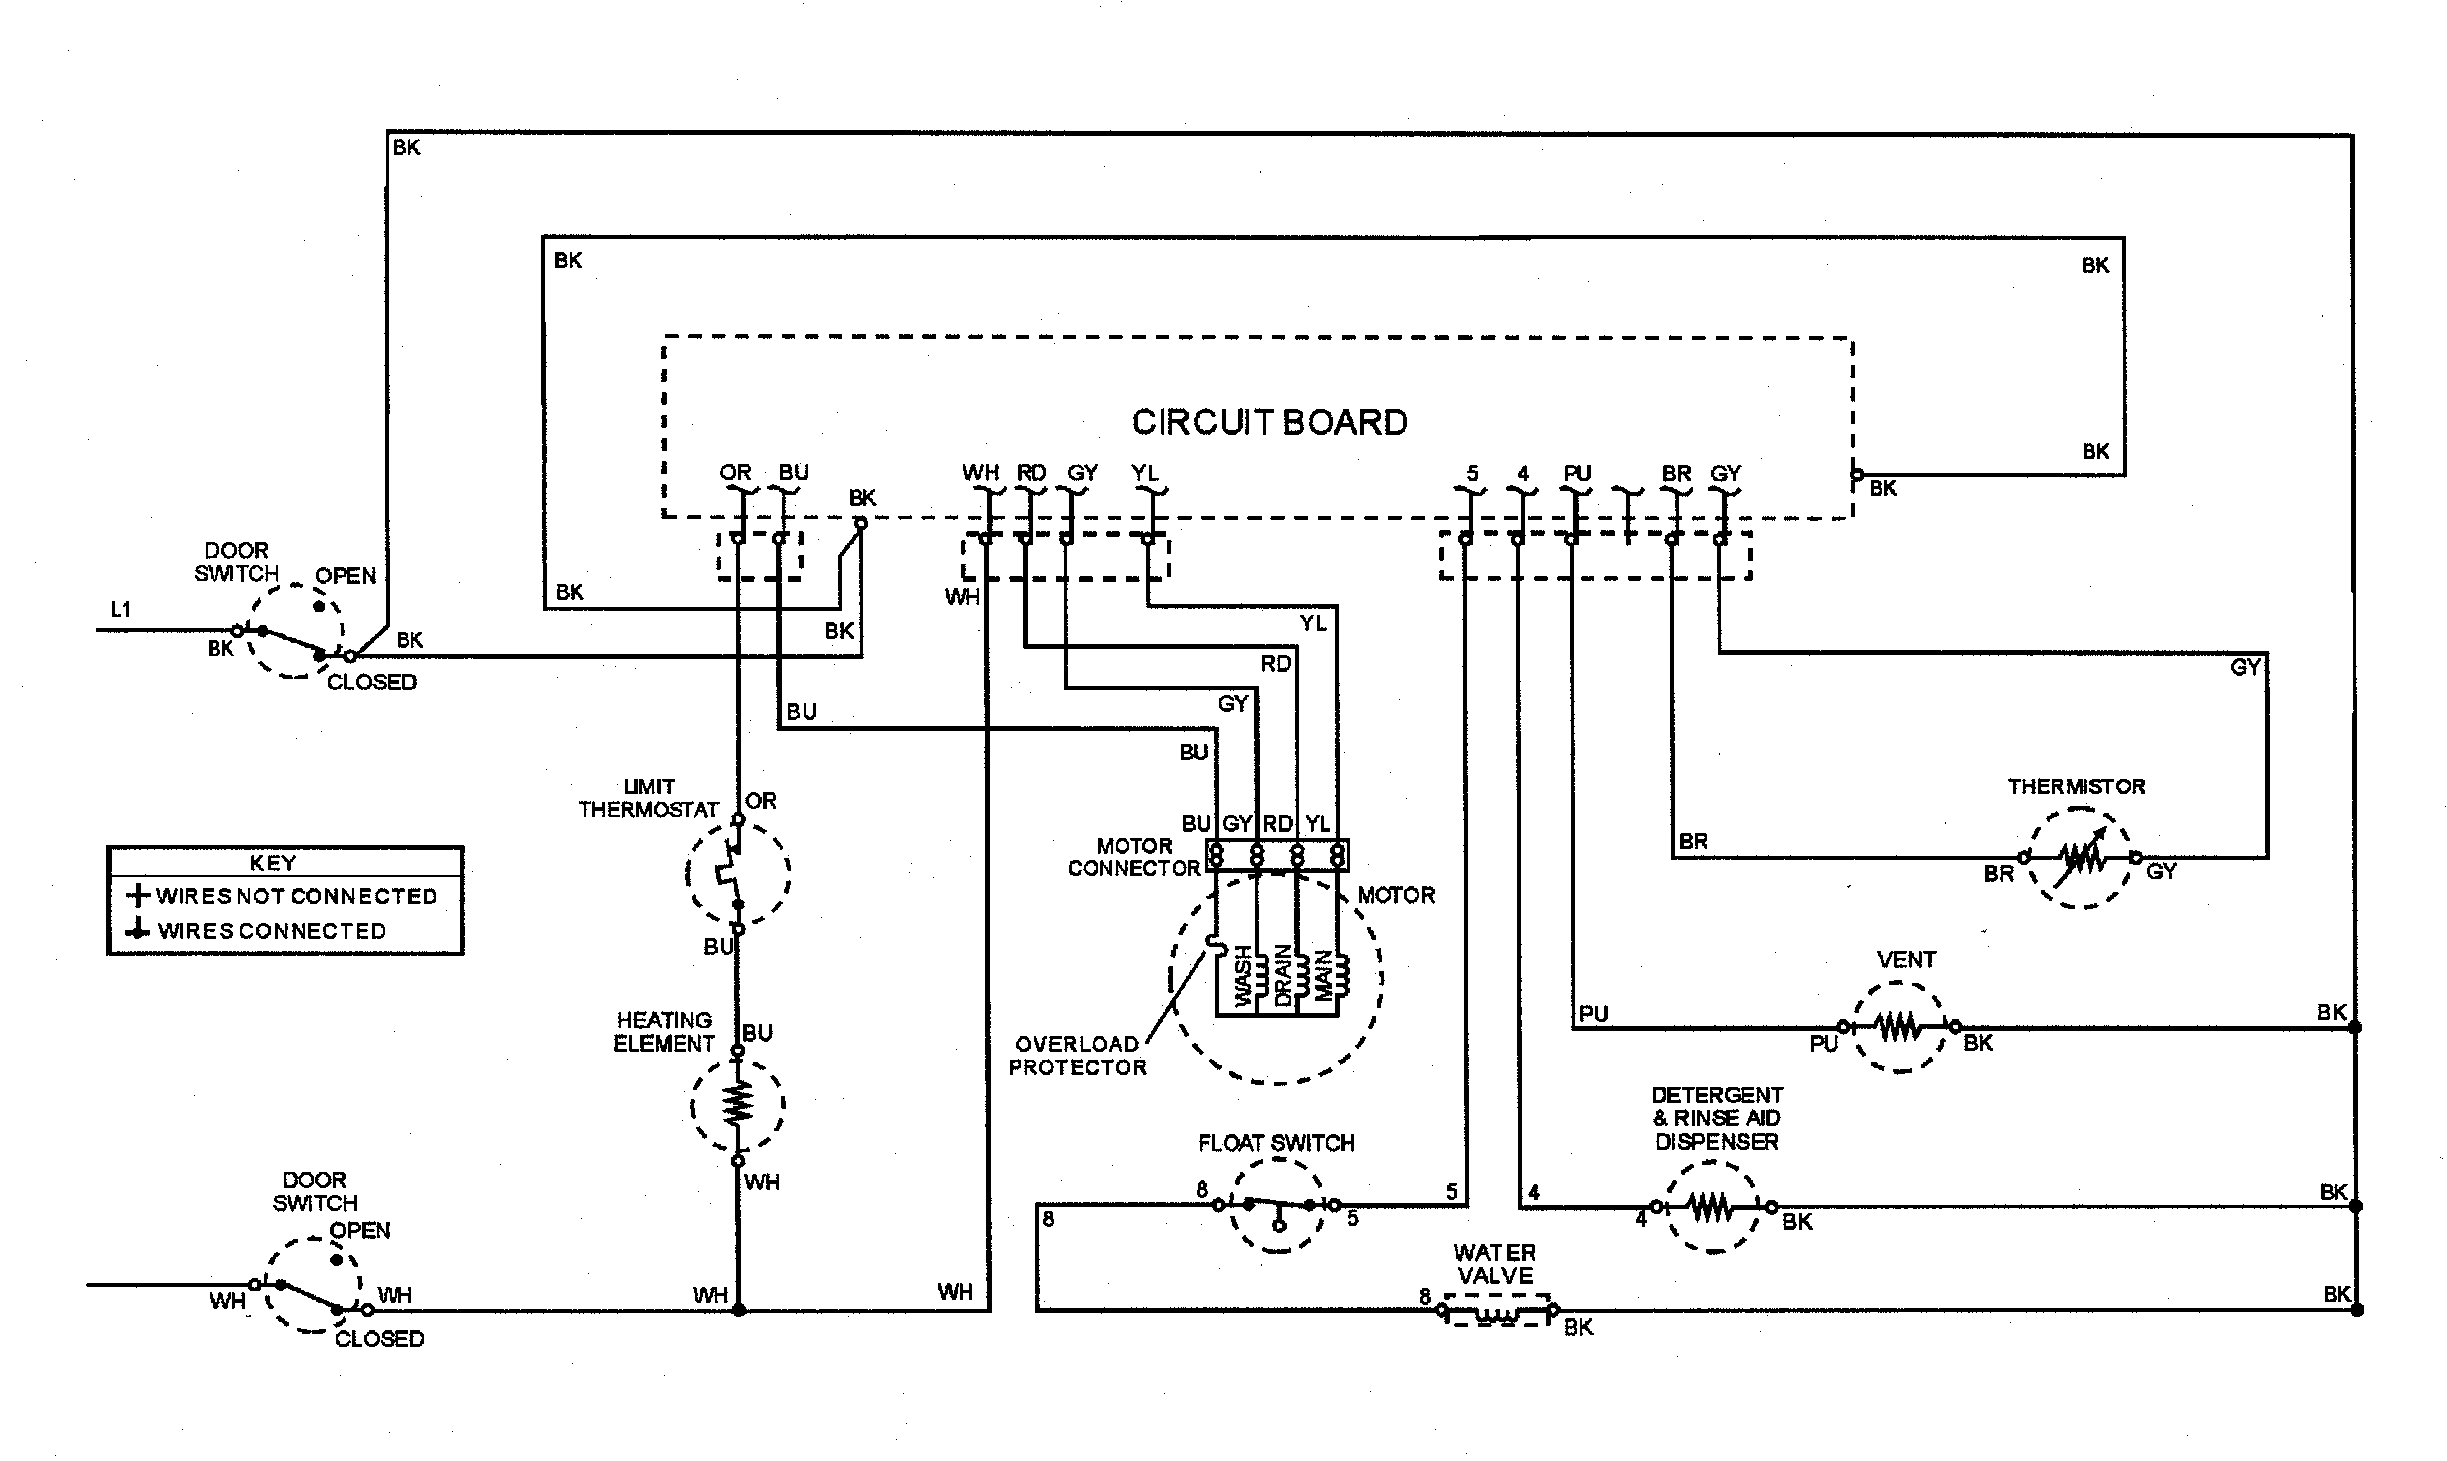 Unique Bosch Dishwasher Motor Wiring Diagram Diagram Diagramtemplate Diagramsample Bosch Dishwashers Bosch Bosch Appliances